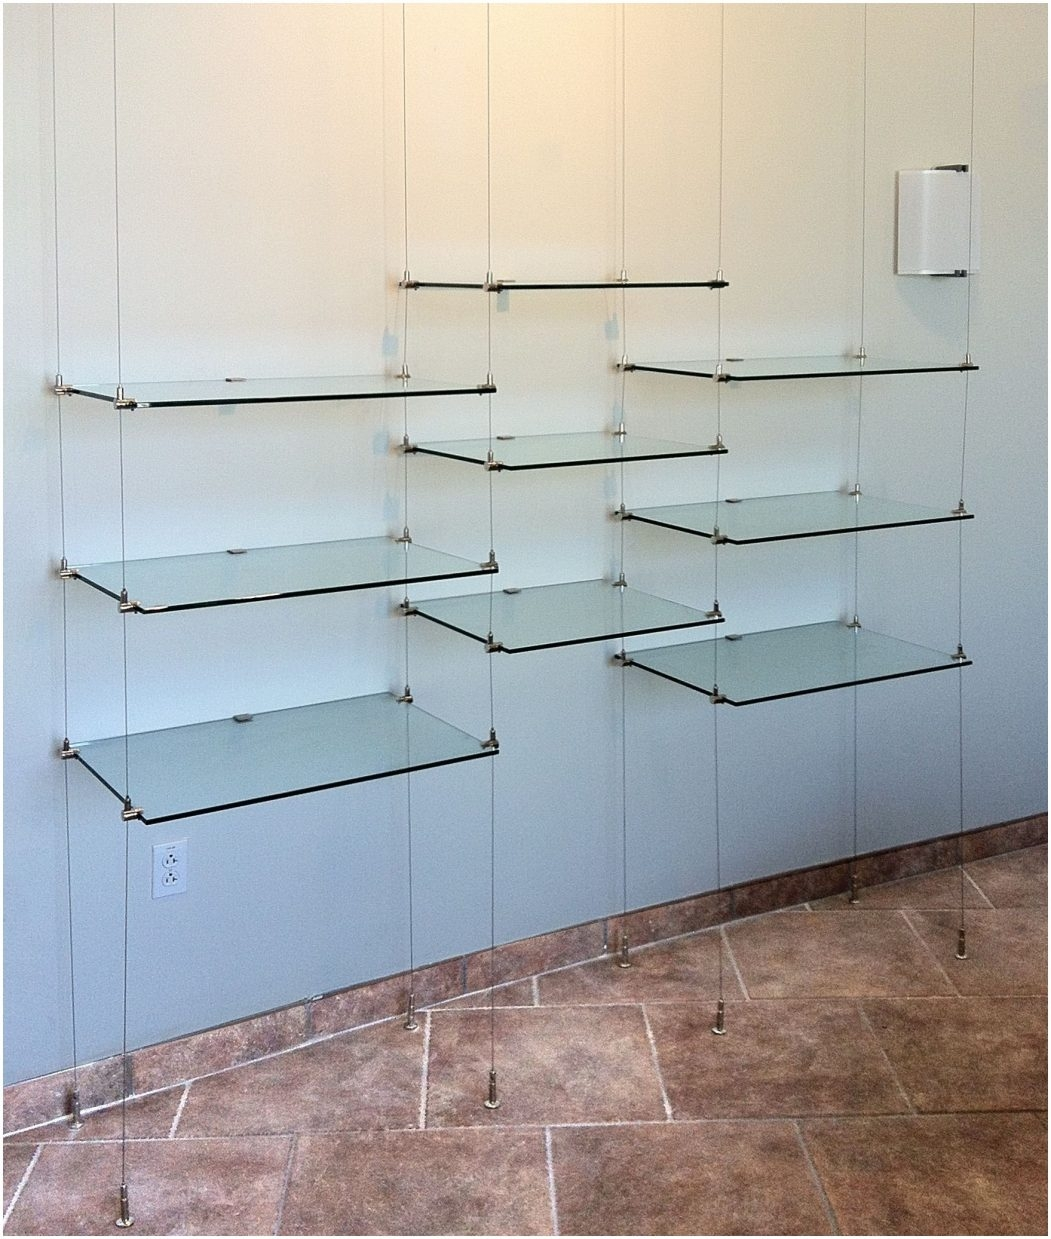 Suspended Glass Shelf Hardware Suspended Cable Shelves For Ventana Inside Cable Suspended Glass Shelves (#11 of 12)